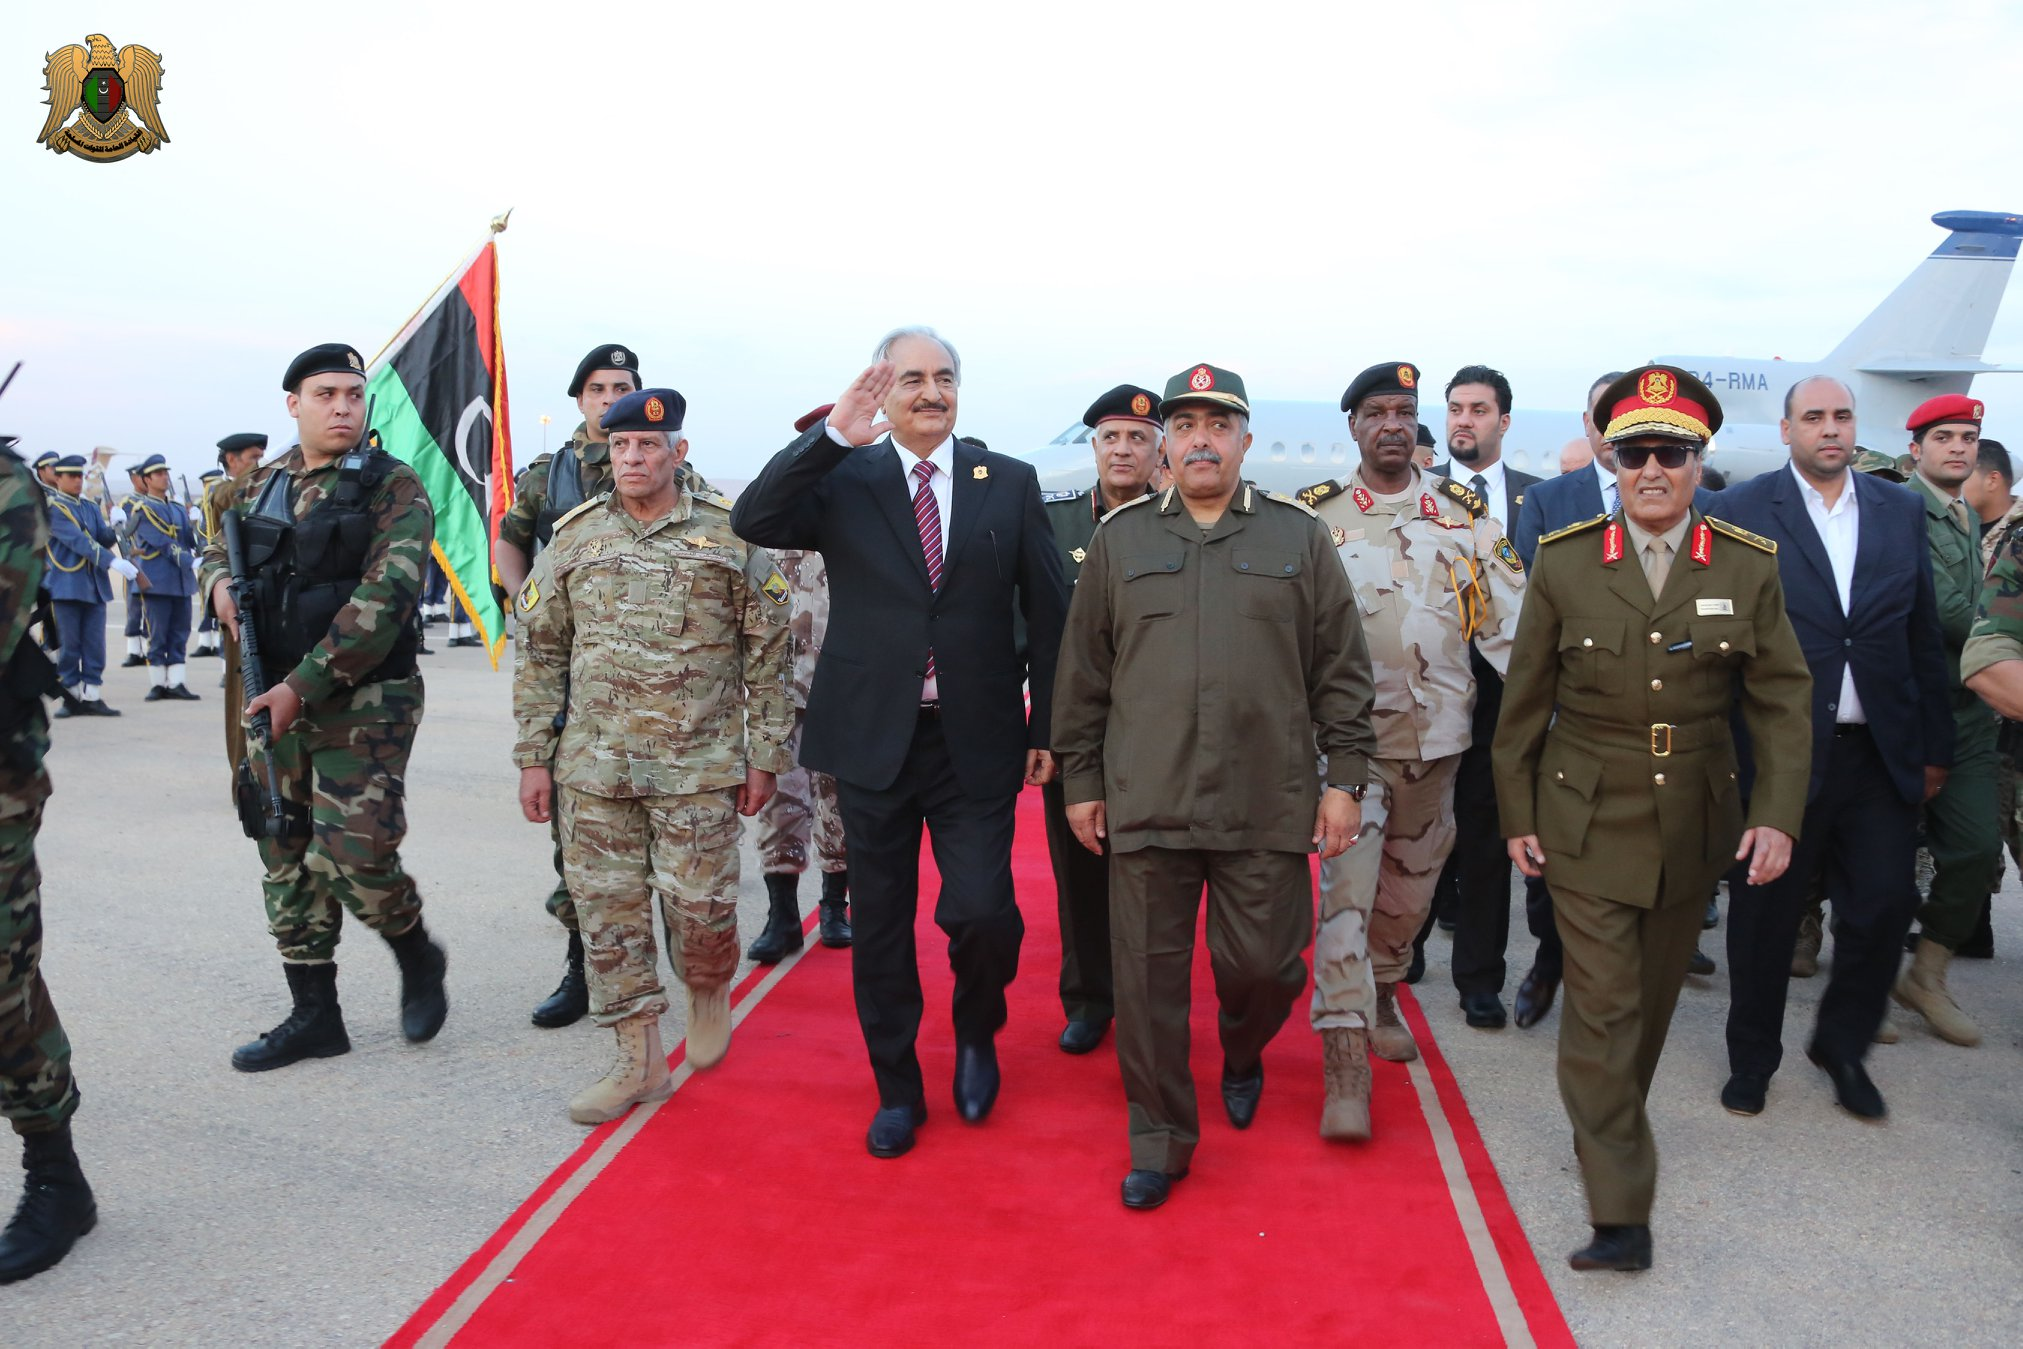 Libyan National Army Chief Returns To Benghazi, Vows To Crush Terrorism